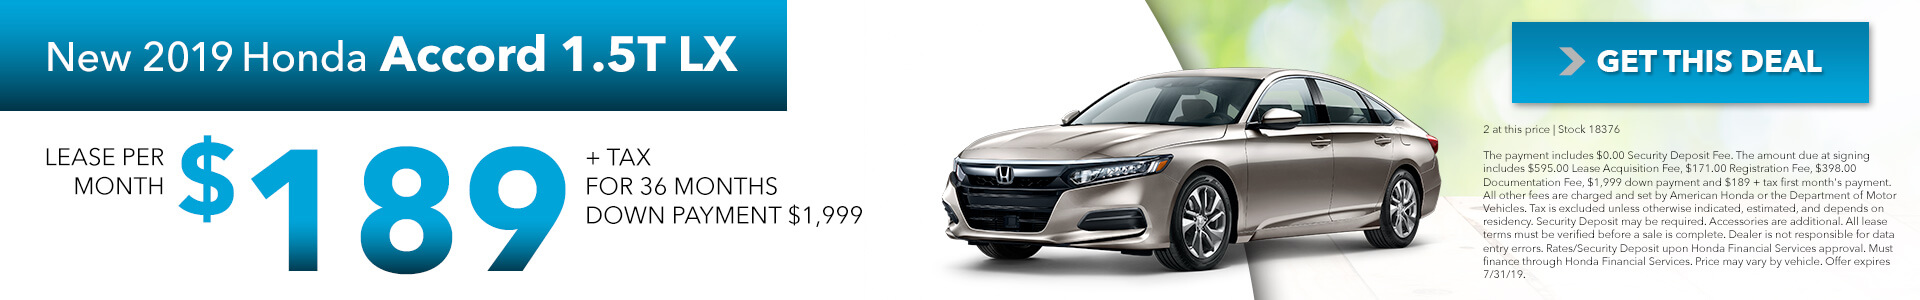 2019 Honda Accord 1.5T LX  $189 per month